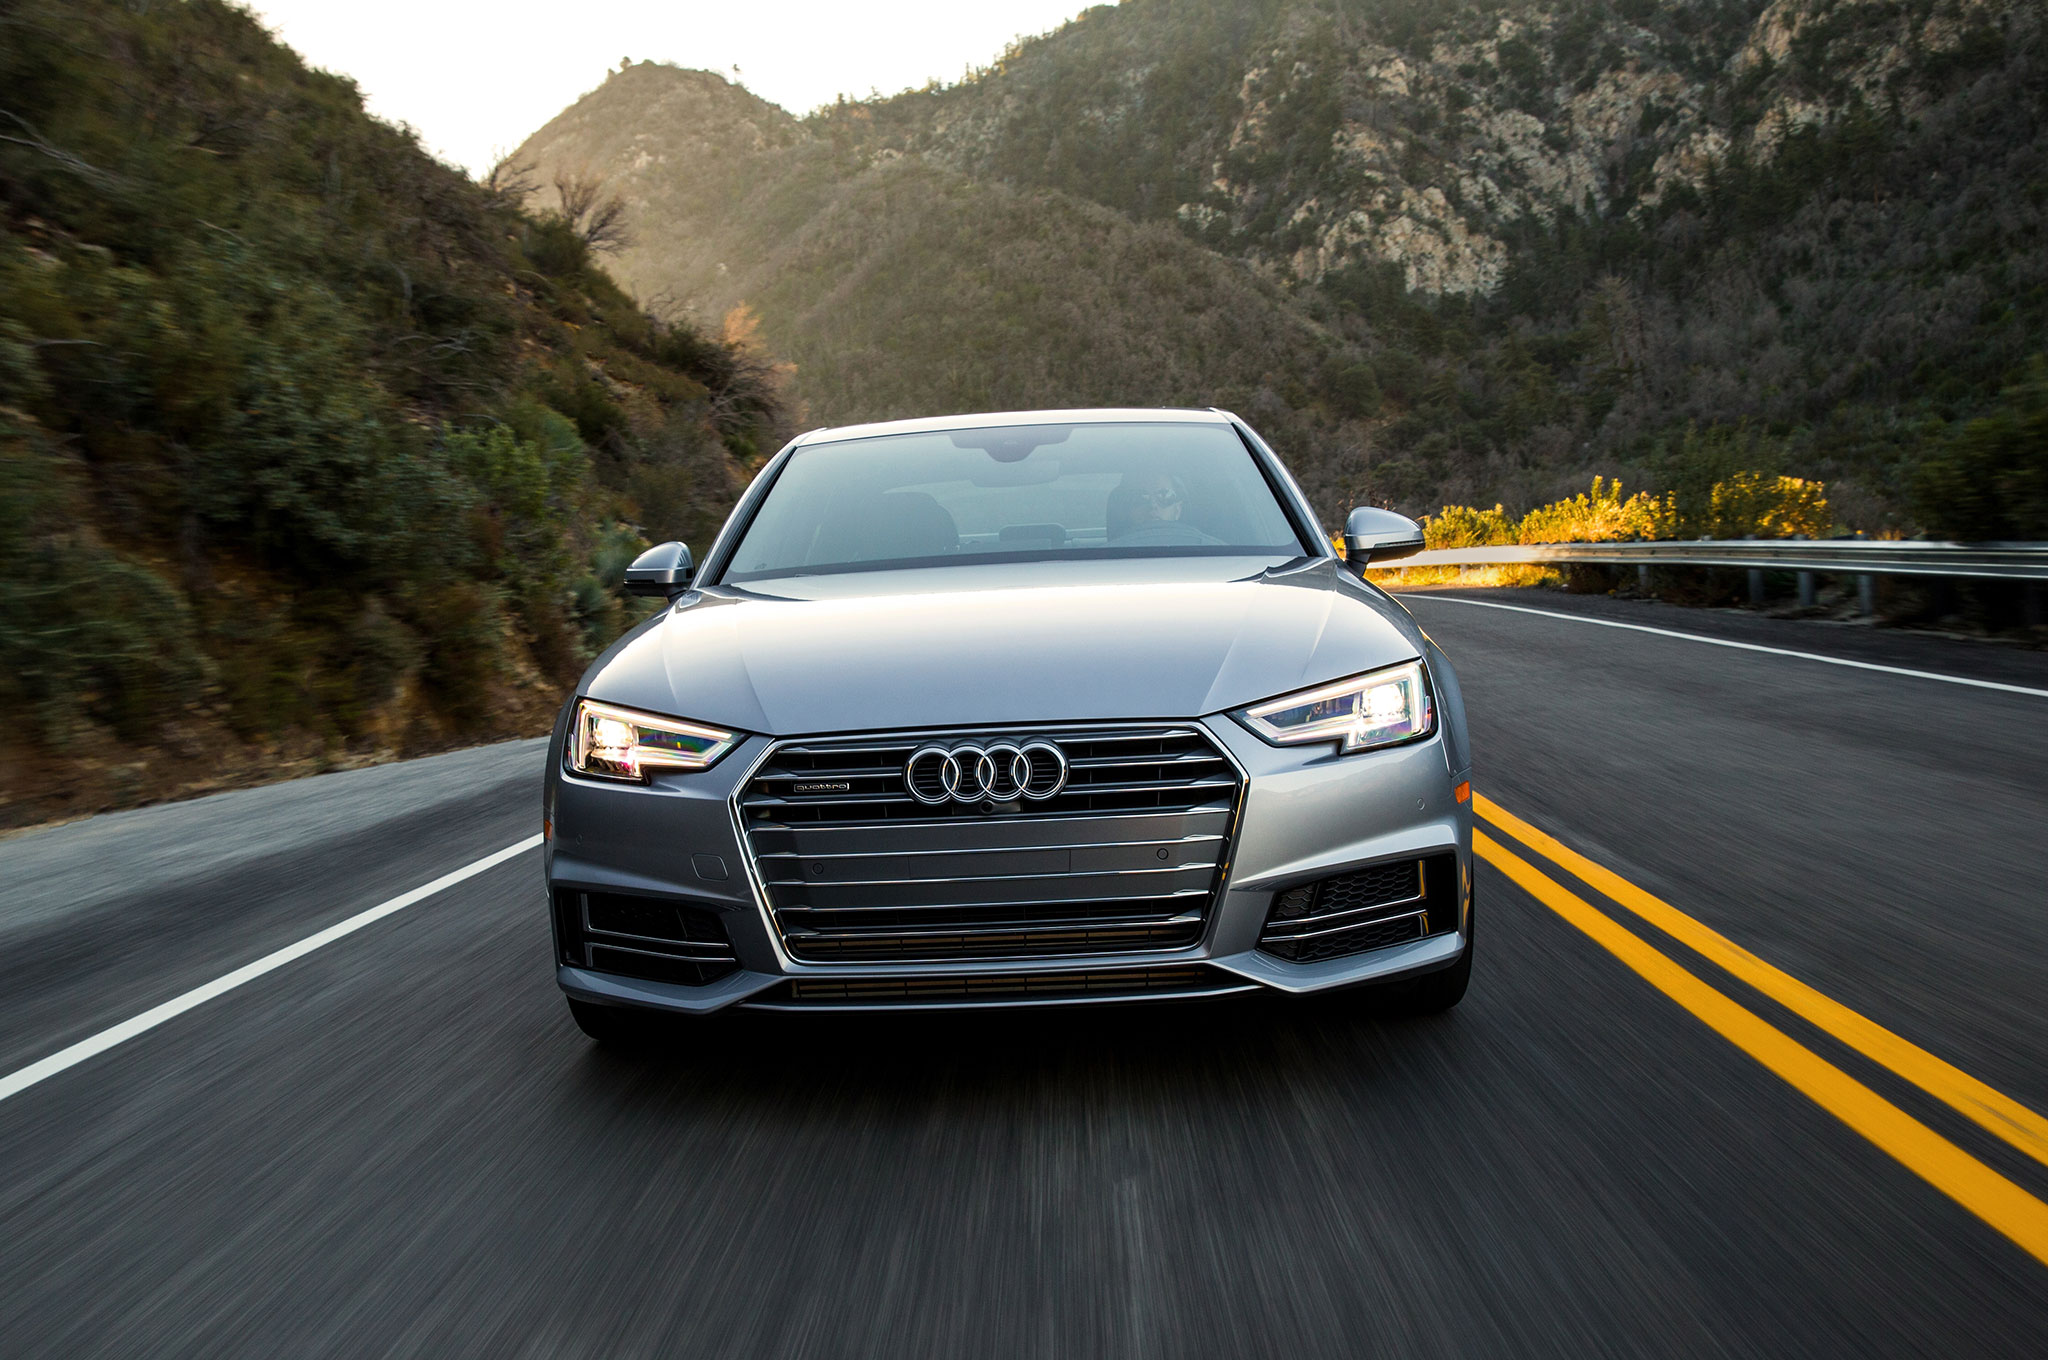 Audi A Manual Quick Take Review Automobile Magazine - 2018 audi a4 msrp